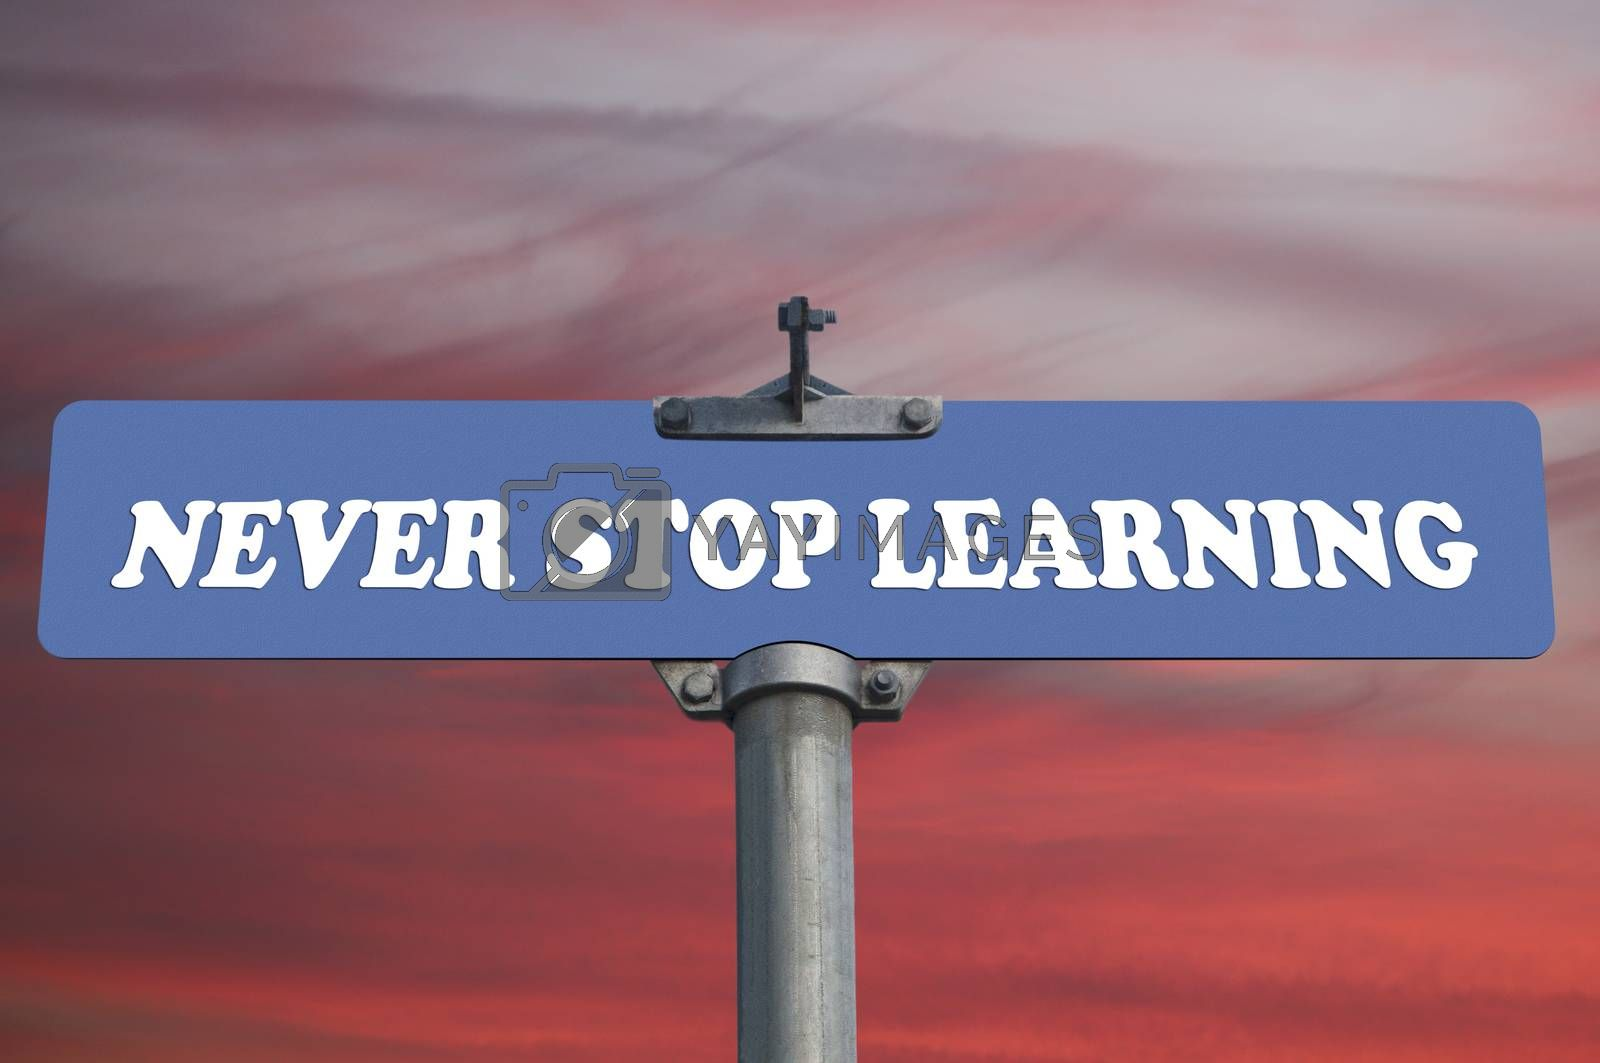 Never stop learning road sign